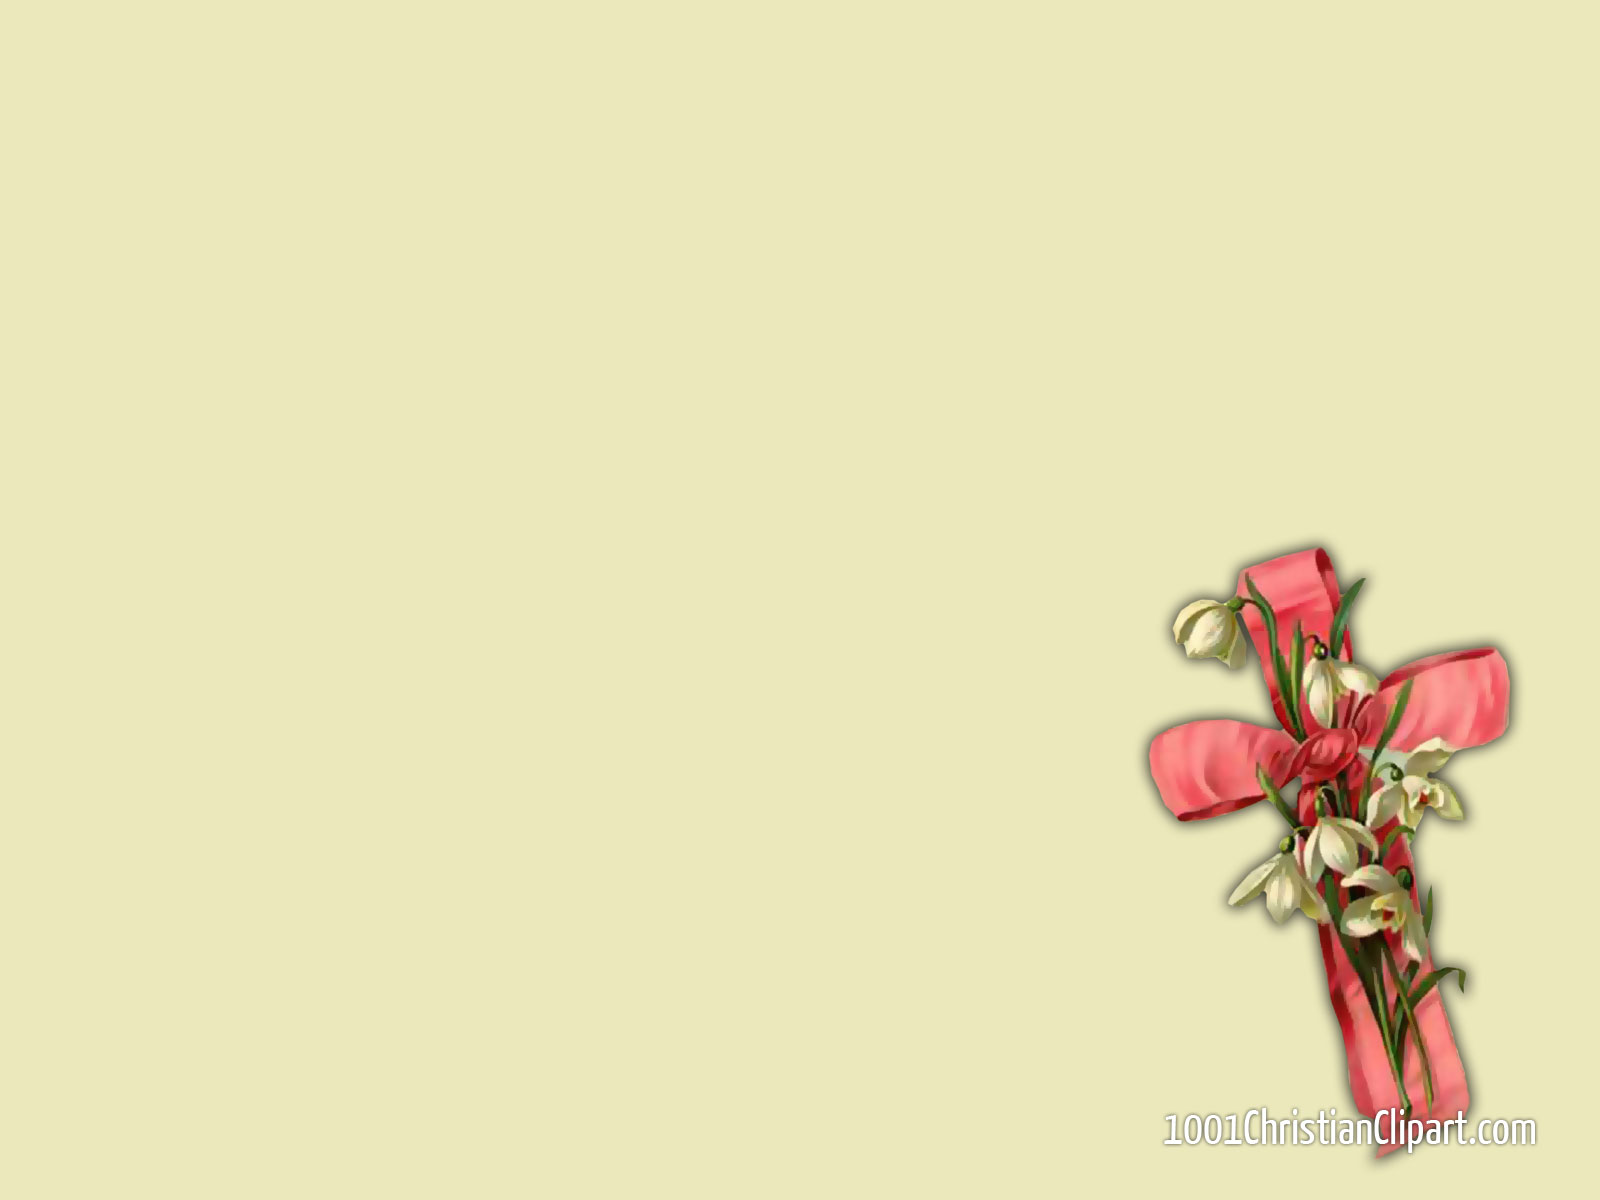 Pink Ribbon Cross Wallpaper Christian Clipart Https Christian